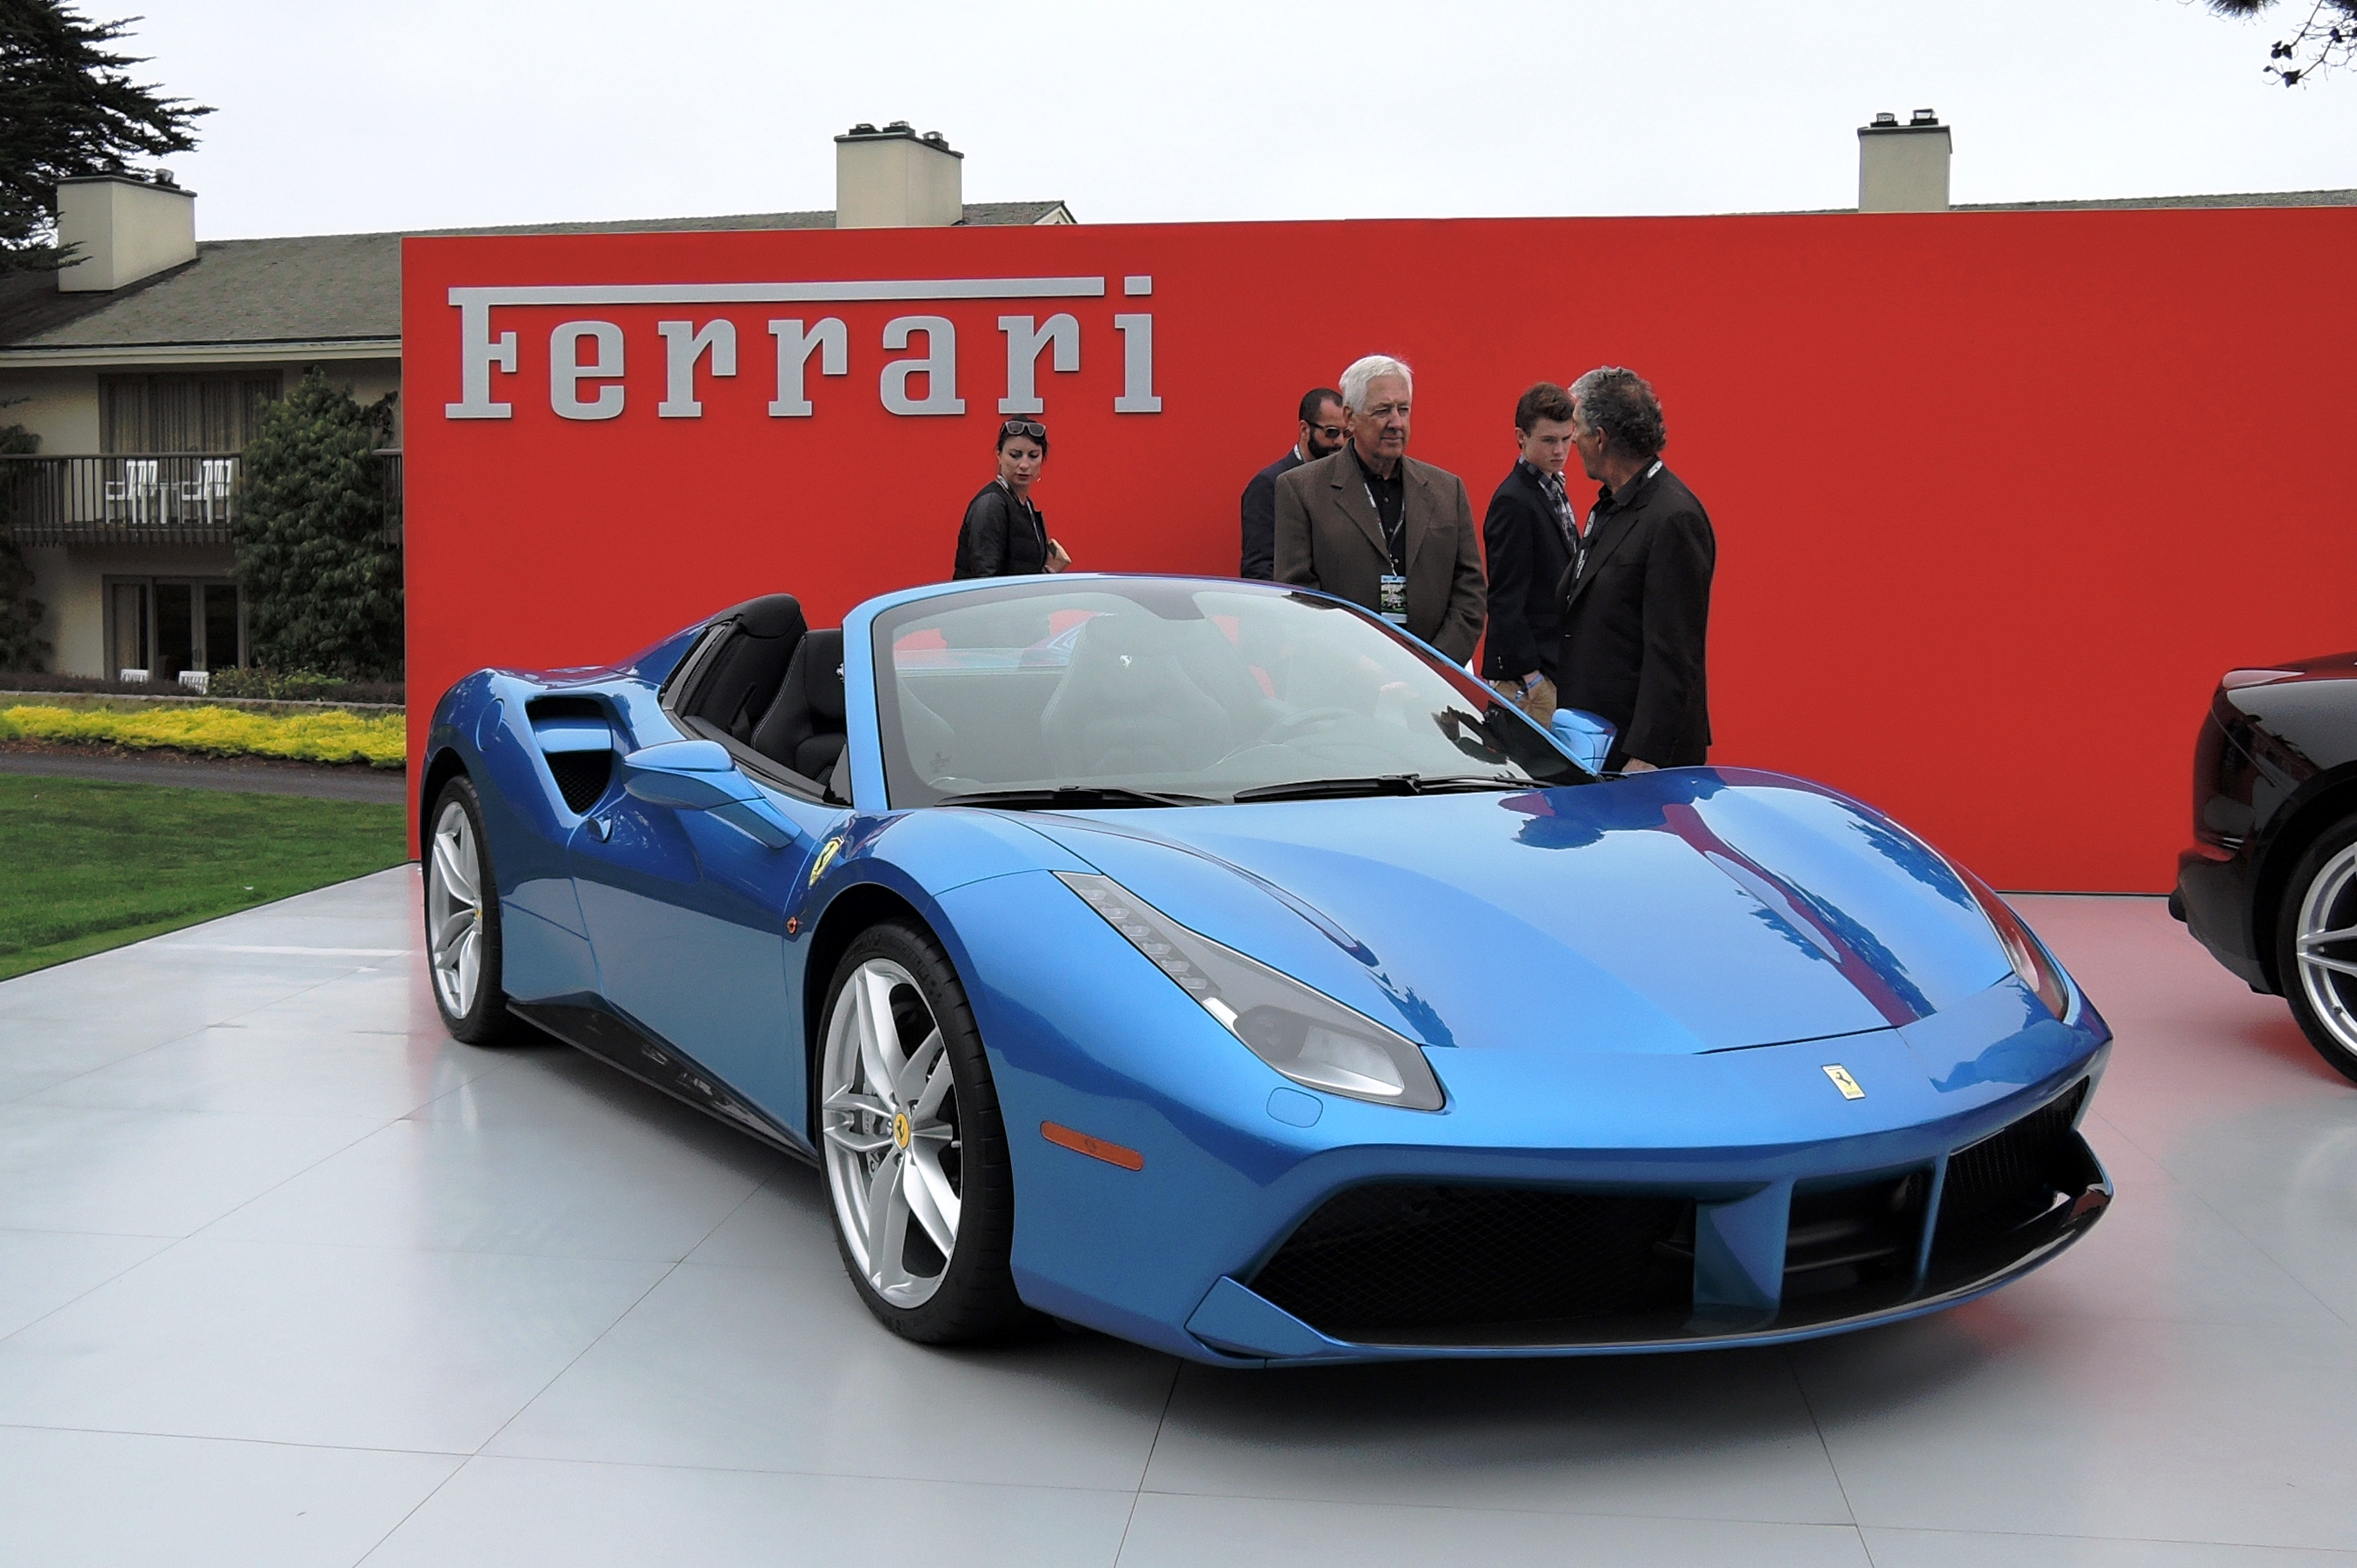 FNA display Ferrari 488 Spyder in Blu Corsa - Pebble Beach Concours d'Elegance 2016